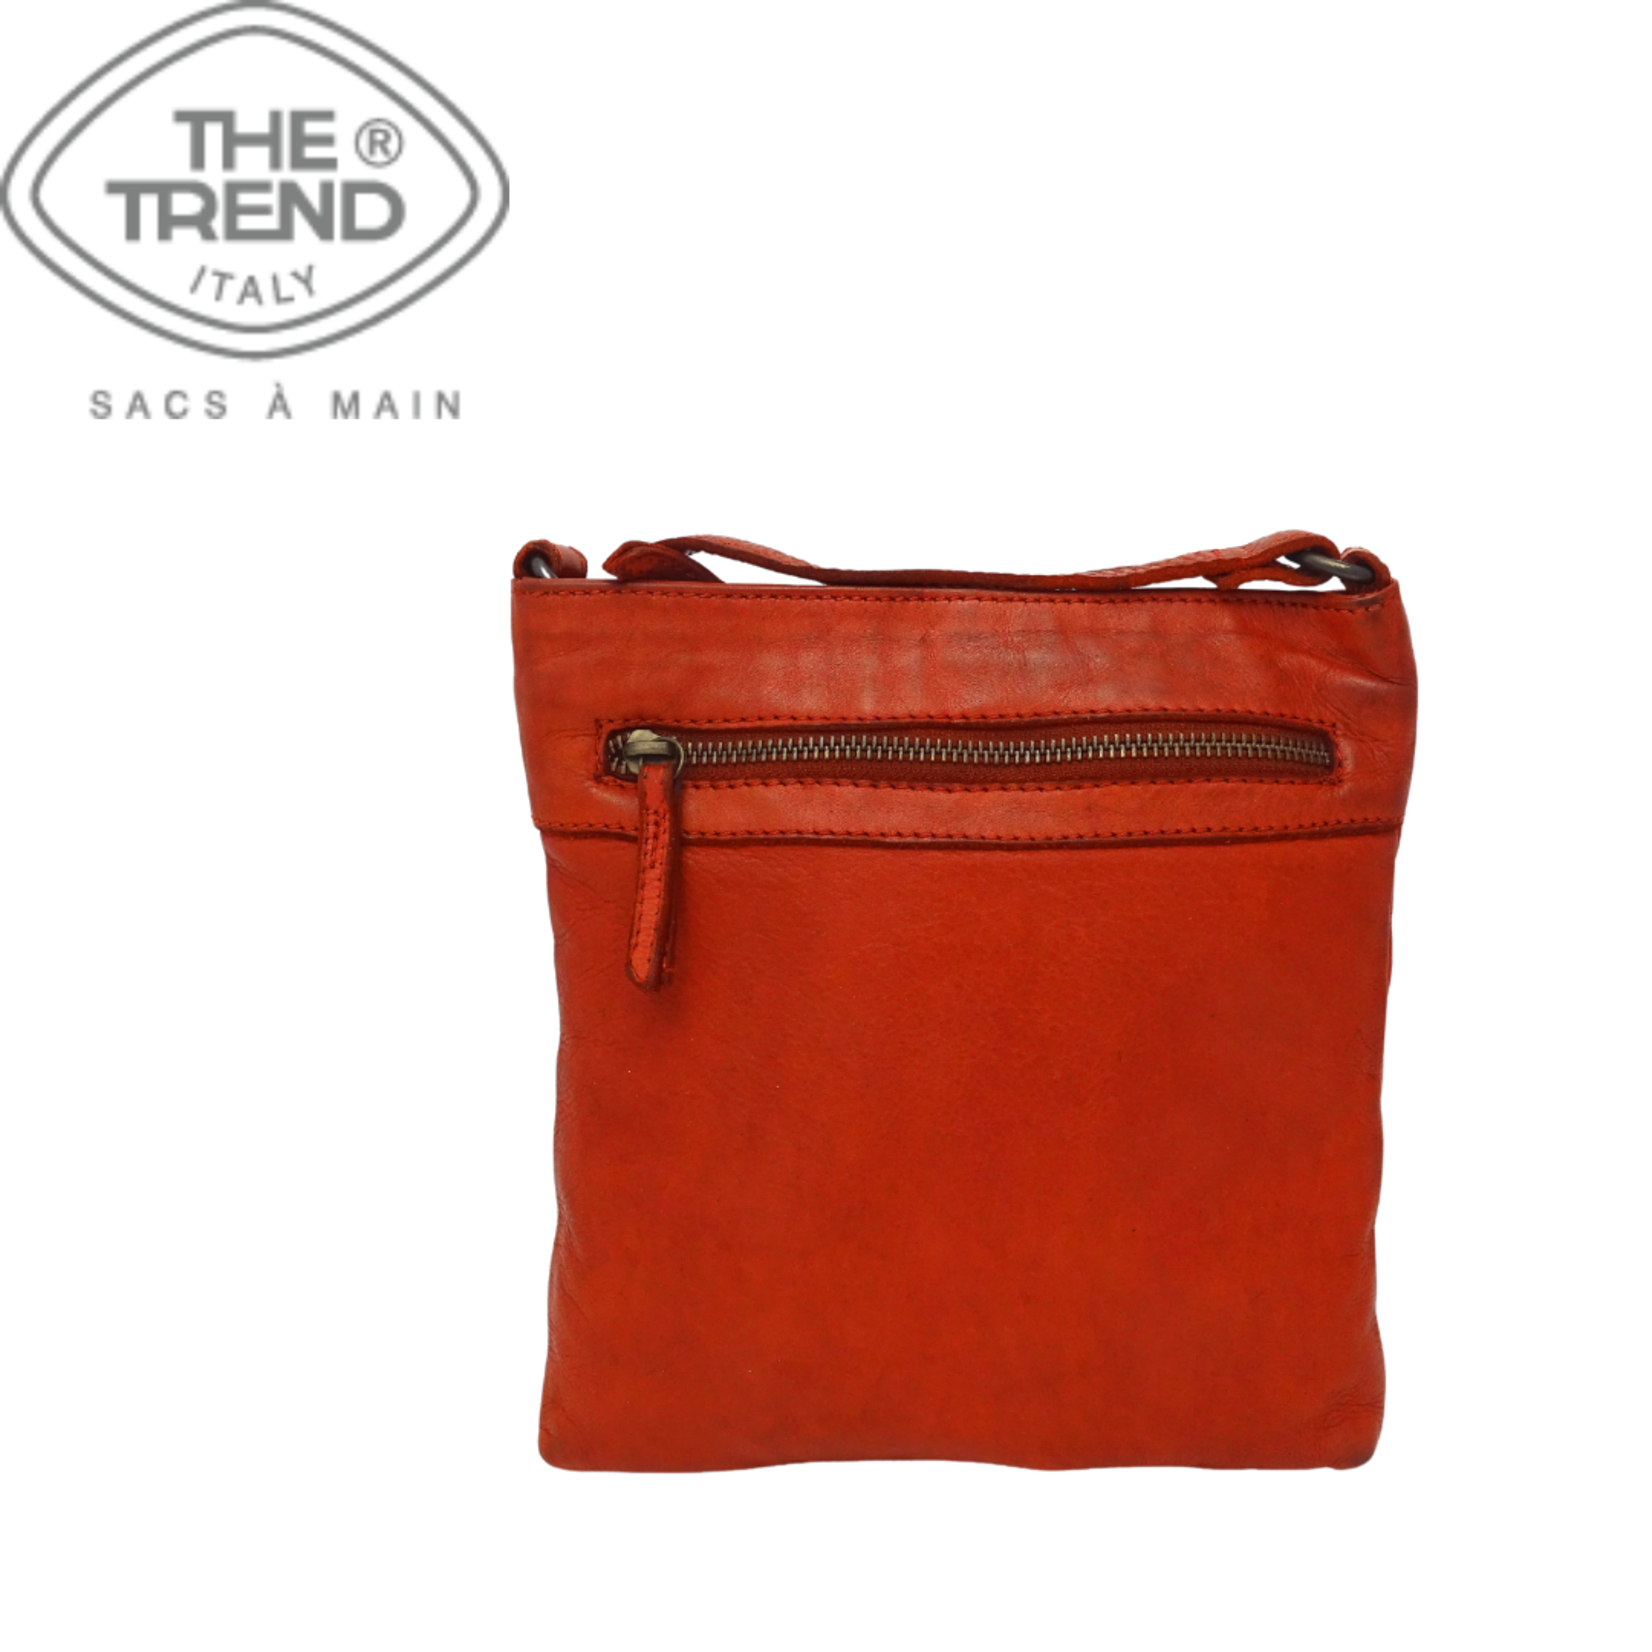 The Trend The Trend 22338 red